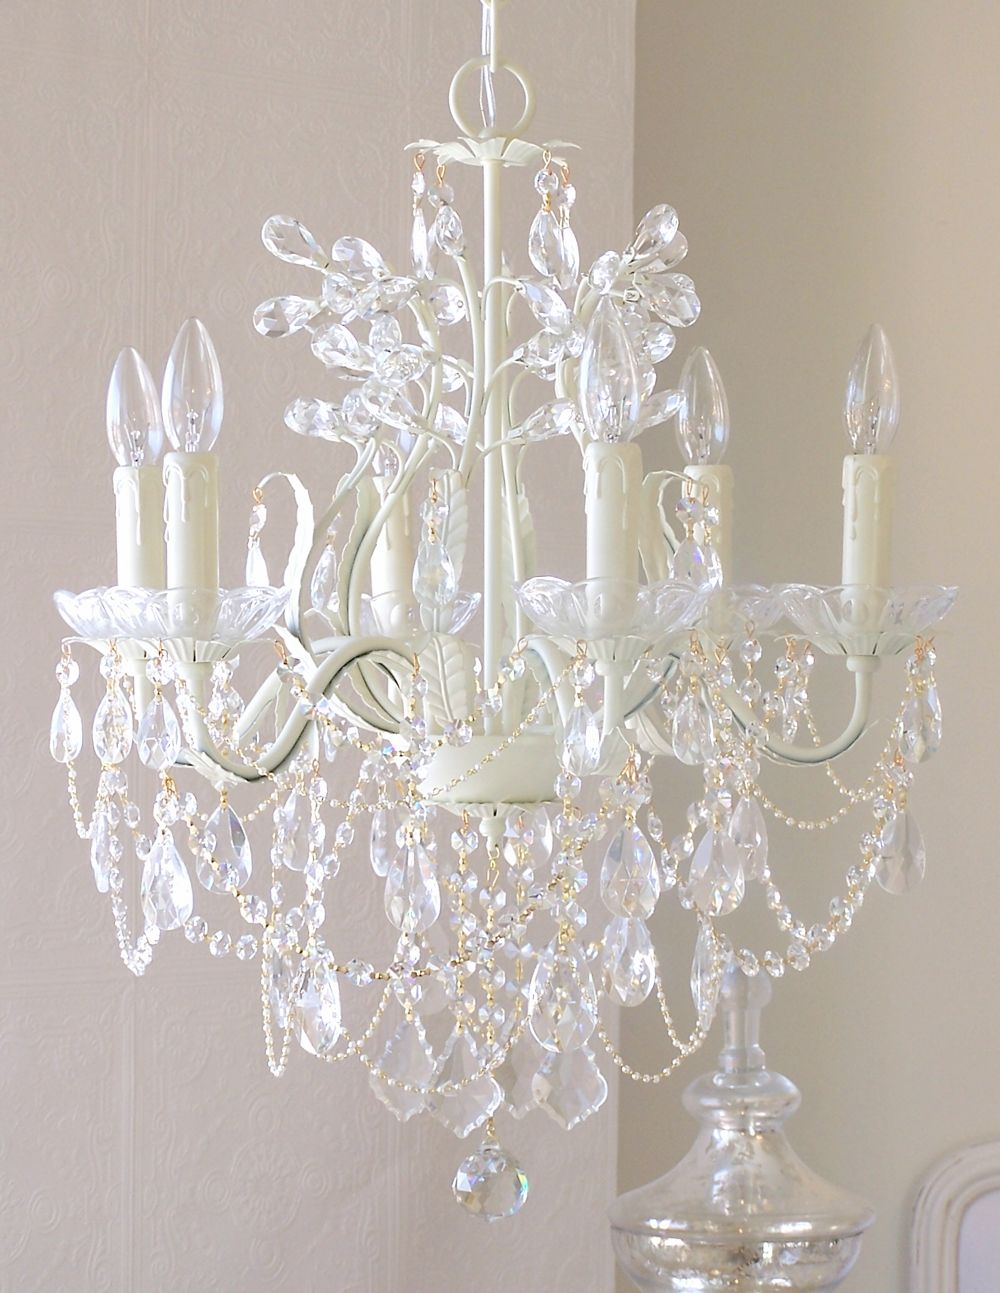 Ivory Crystal Nursery Chandelier At Jack And Jill Boutique Www Rusticevents